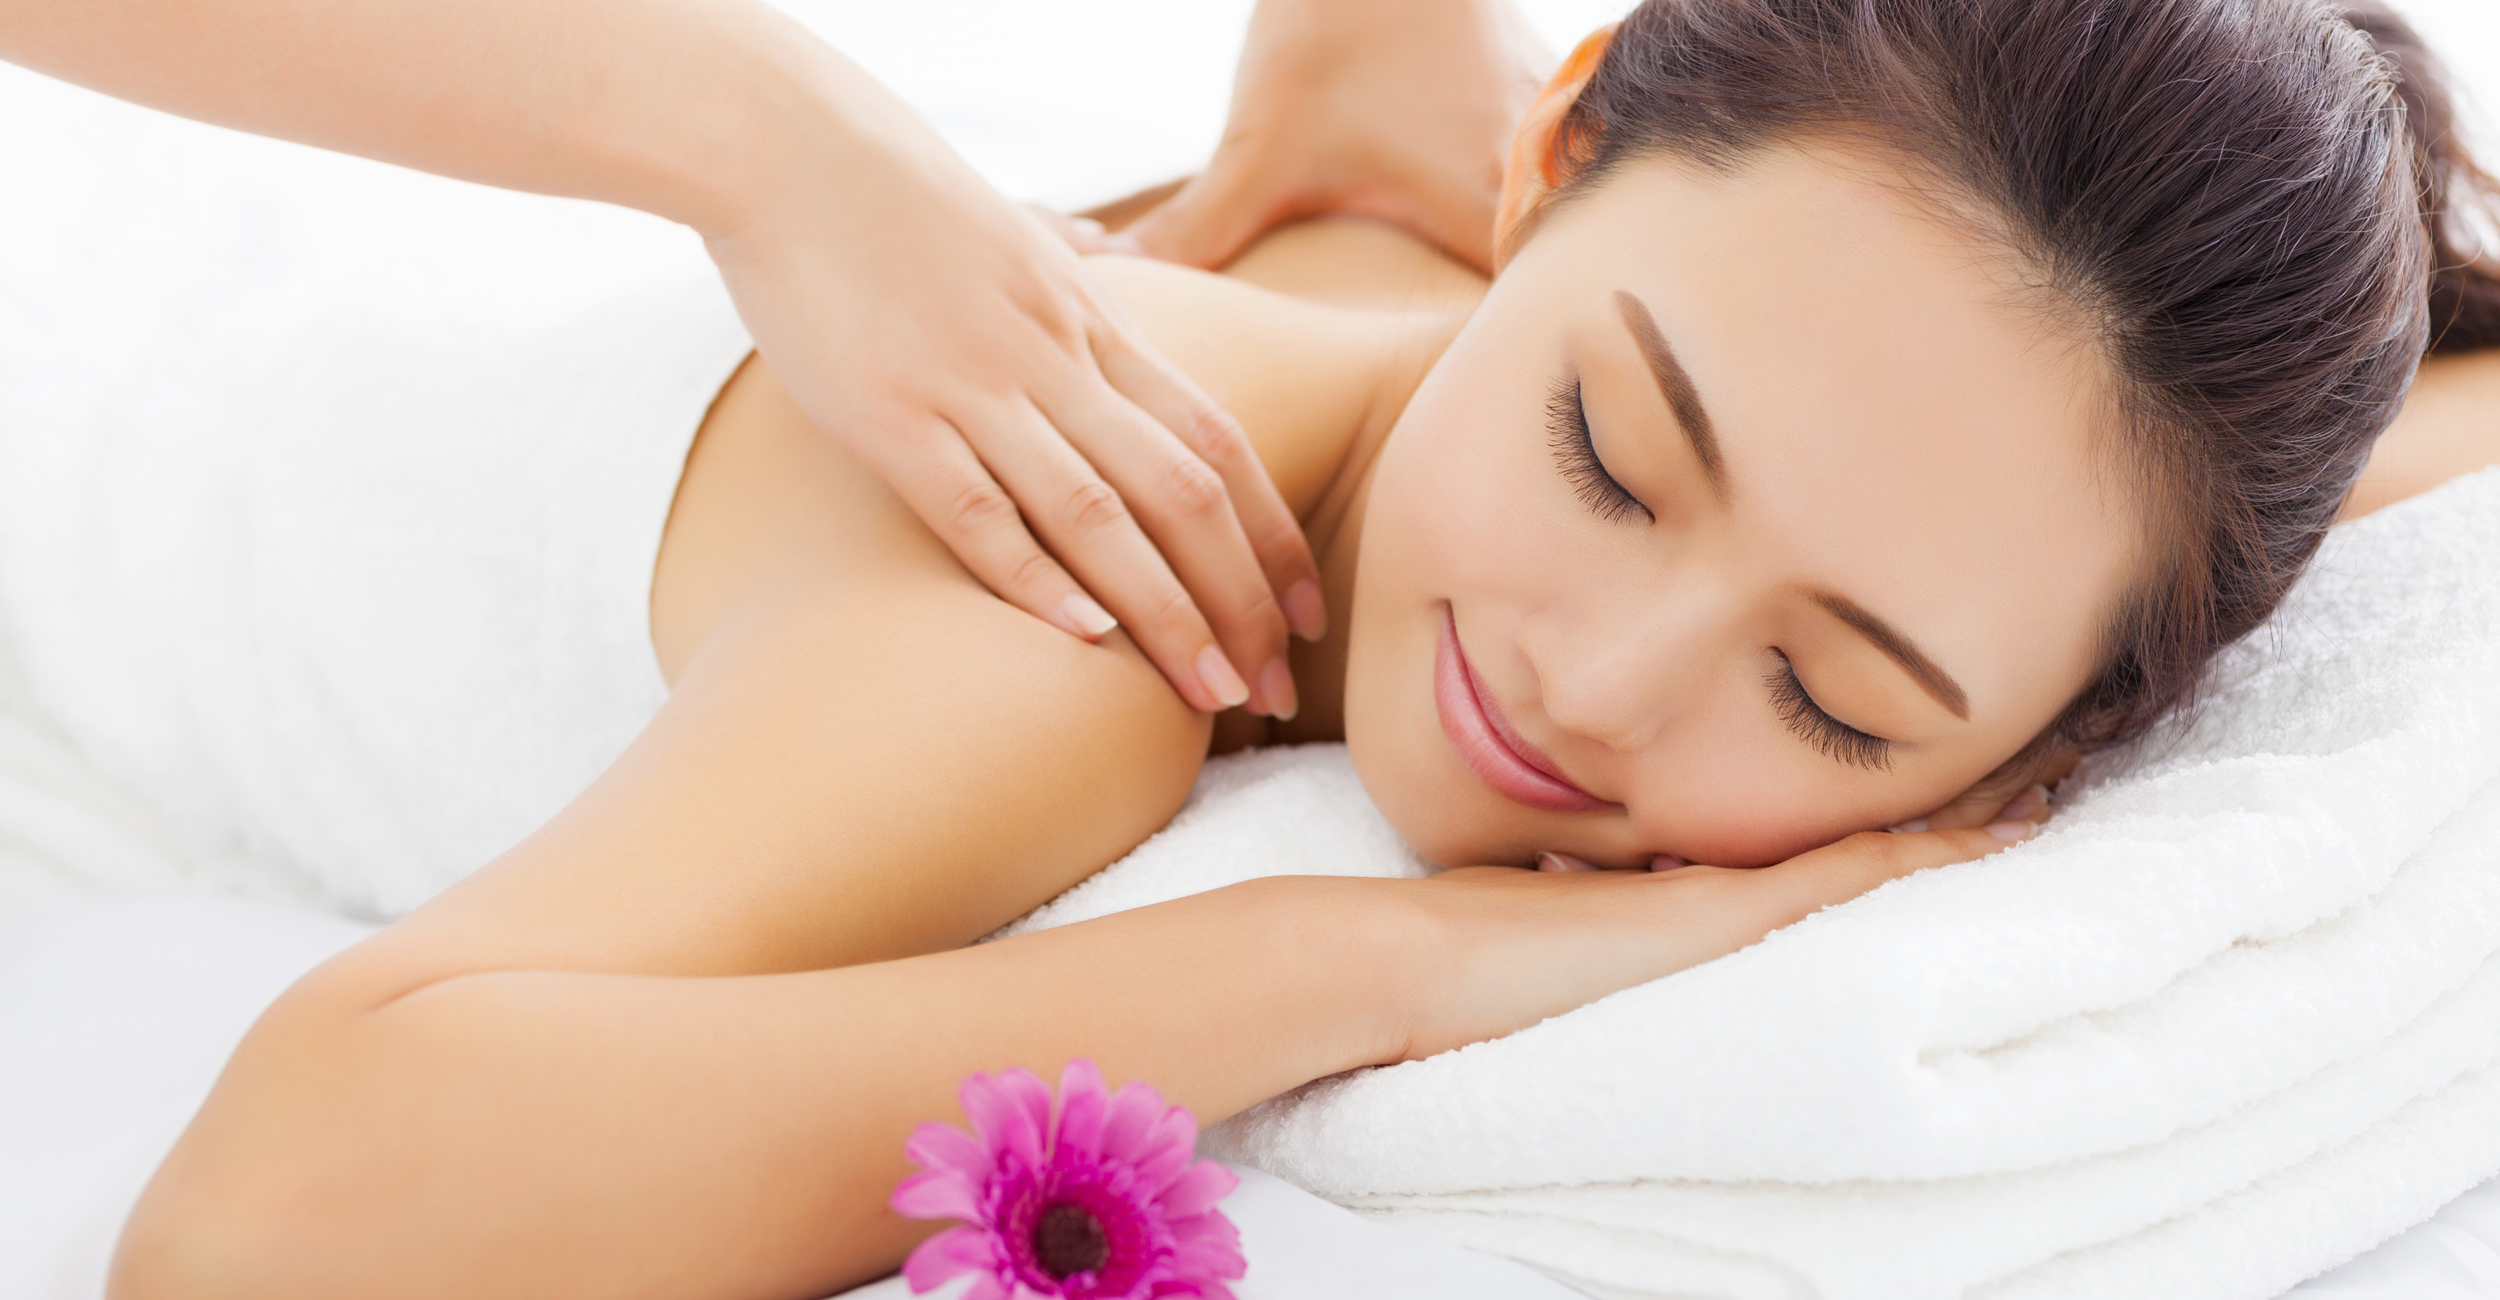 Columbia City Chiropractic. South Seattle Massage. Rainier Valley Massage. South seattle chiropractor. Rainier Valley Chiropractor. Chiropractic Treatment. Massage Therapy.